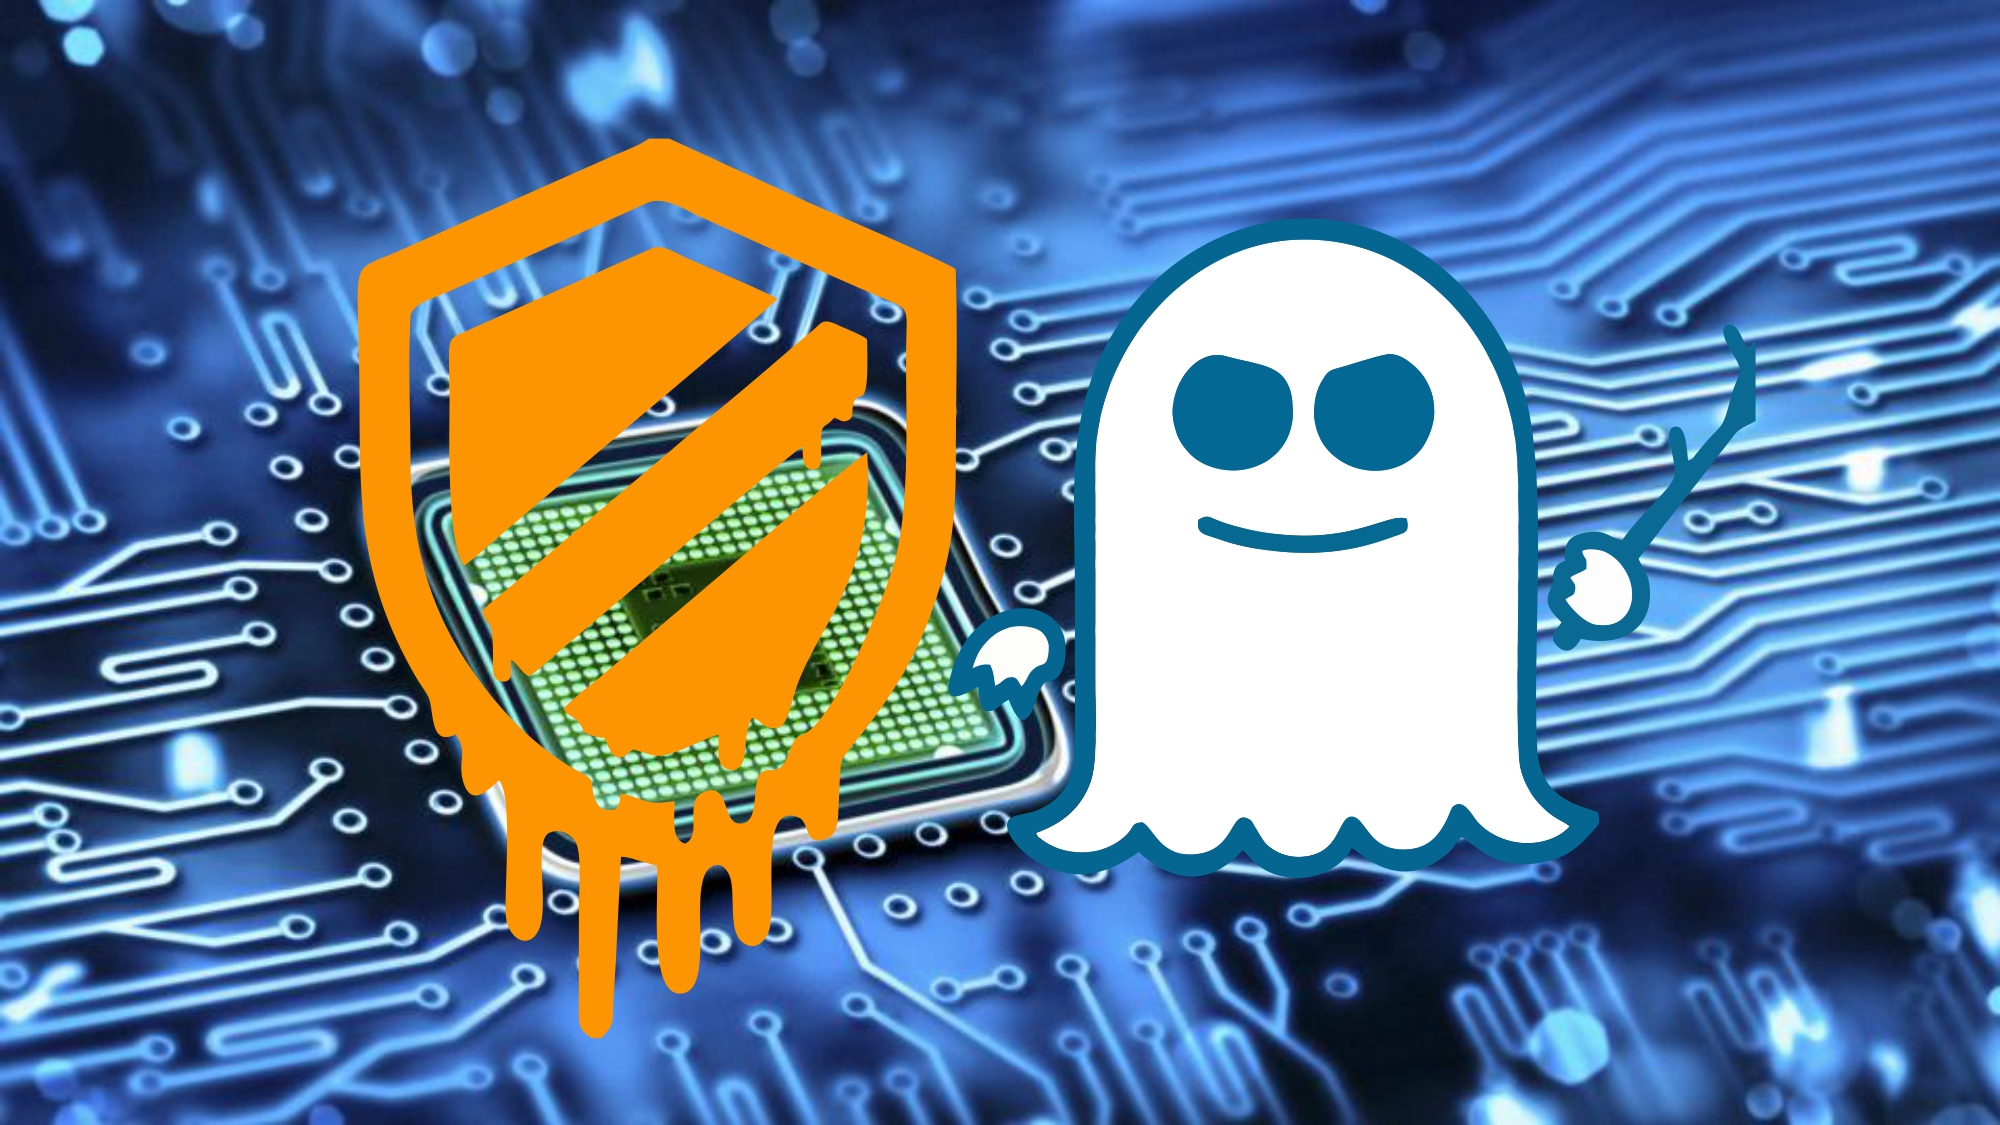 The Spectre of a Potential Security Meltdown